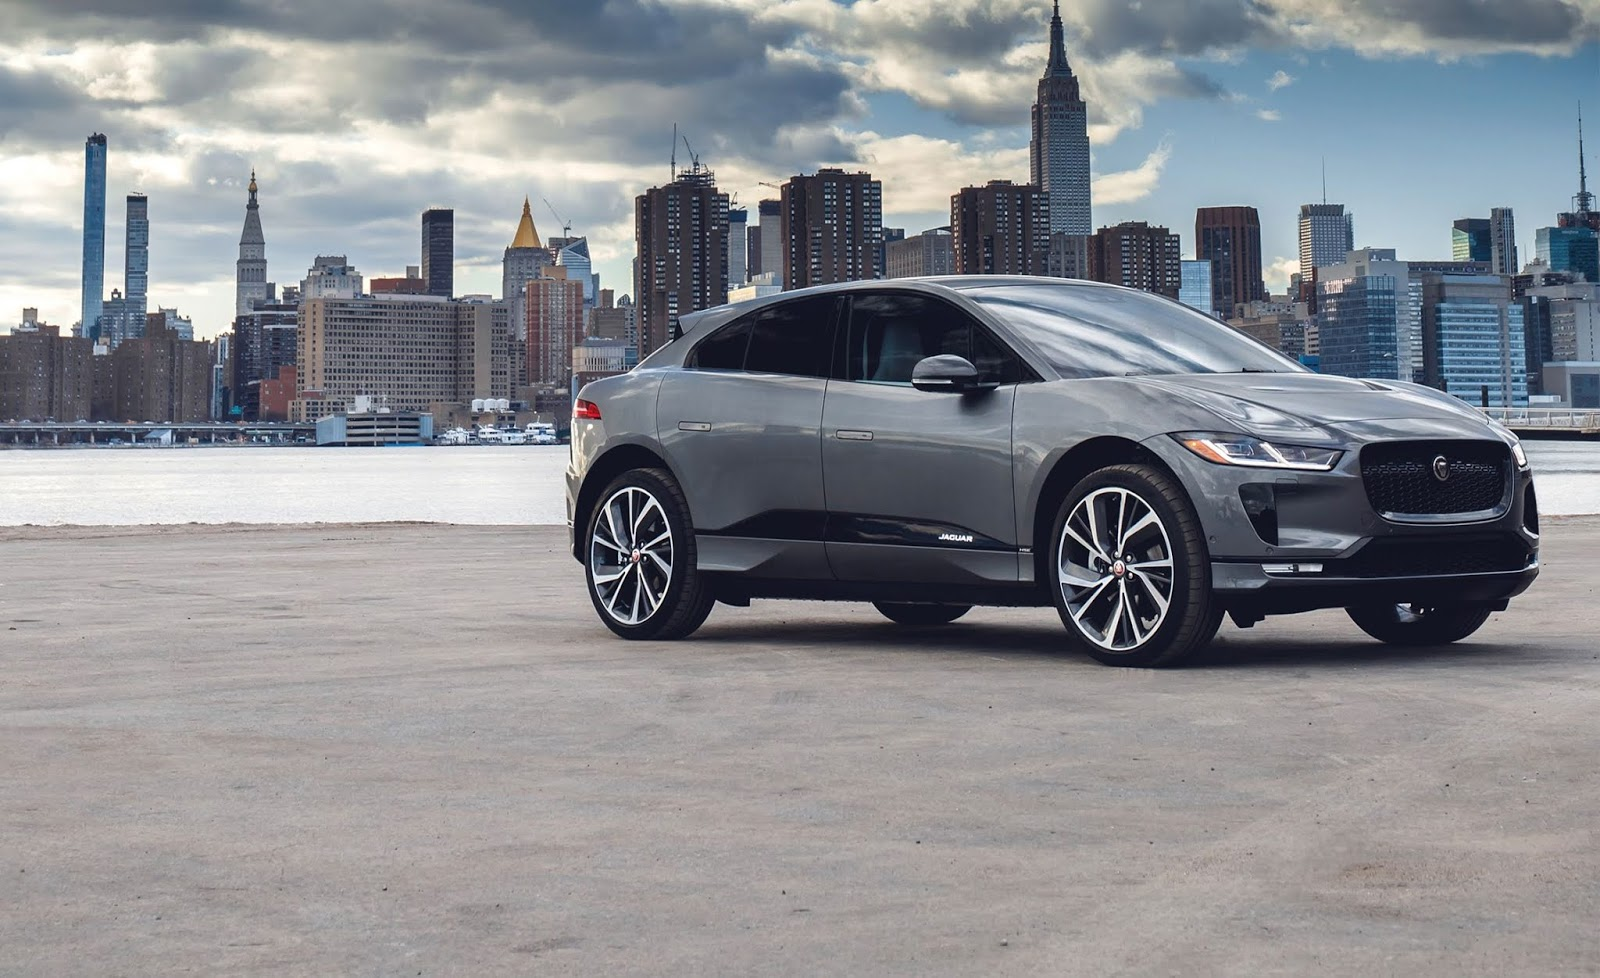 2019 Jaguar I-Pace EV: Design, Specs, Mileage, Price >> Jaguar S I Pace Wins 3 New International Awards